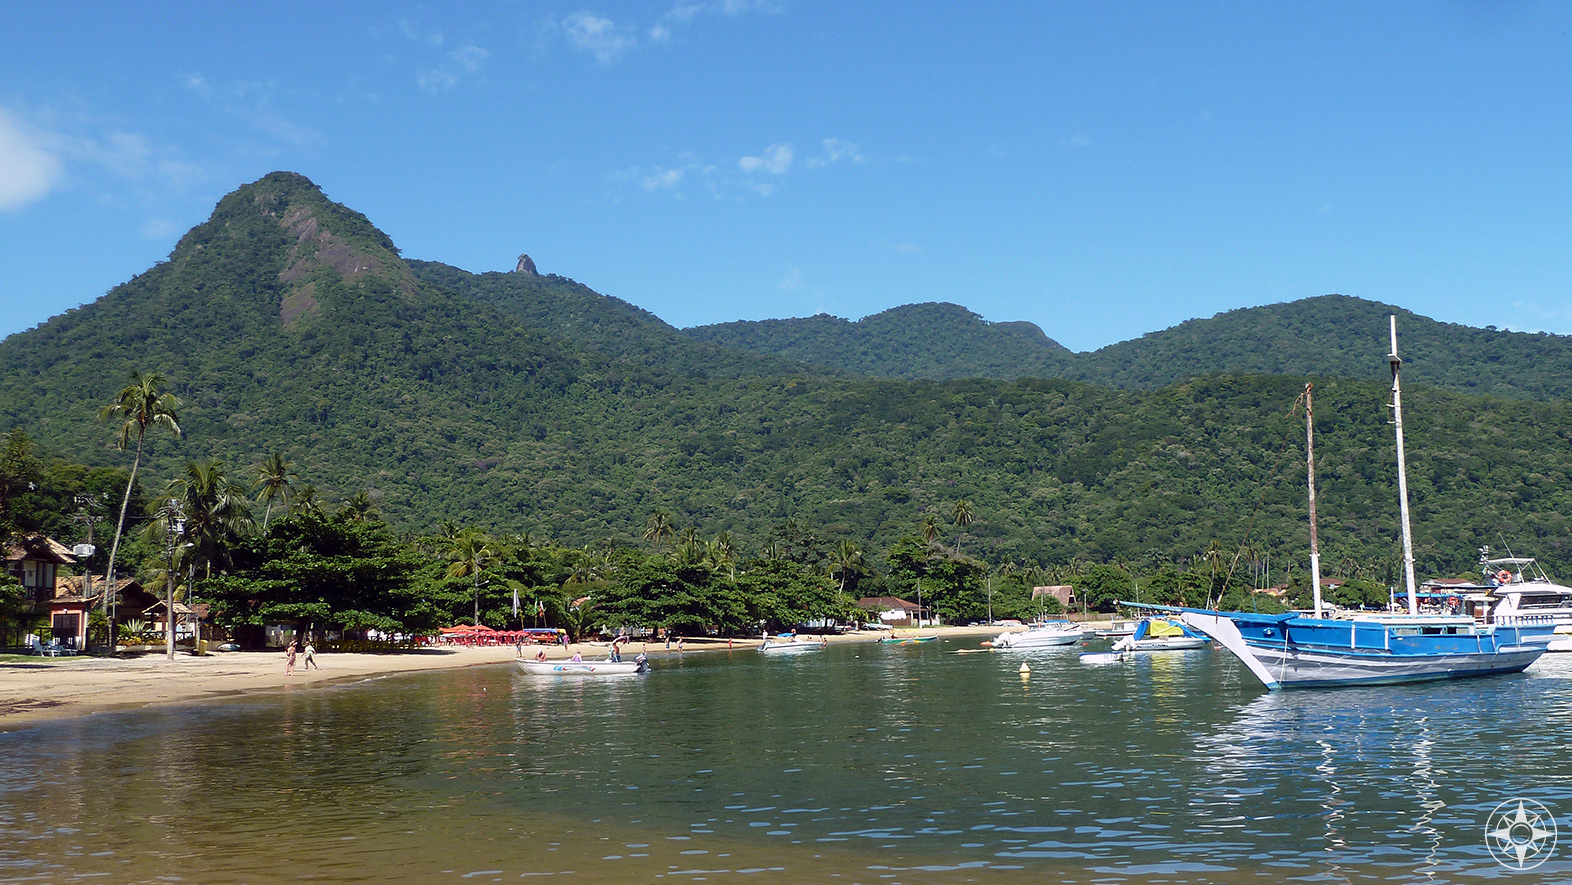 Abraão village and the Pico Papagaio peak on Ilha Grande, Brazil.